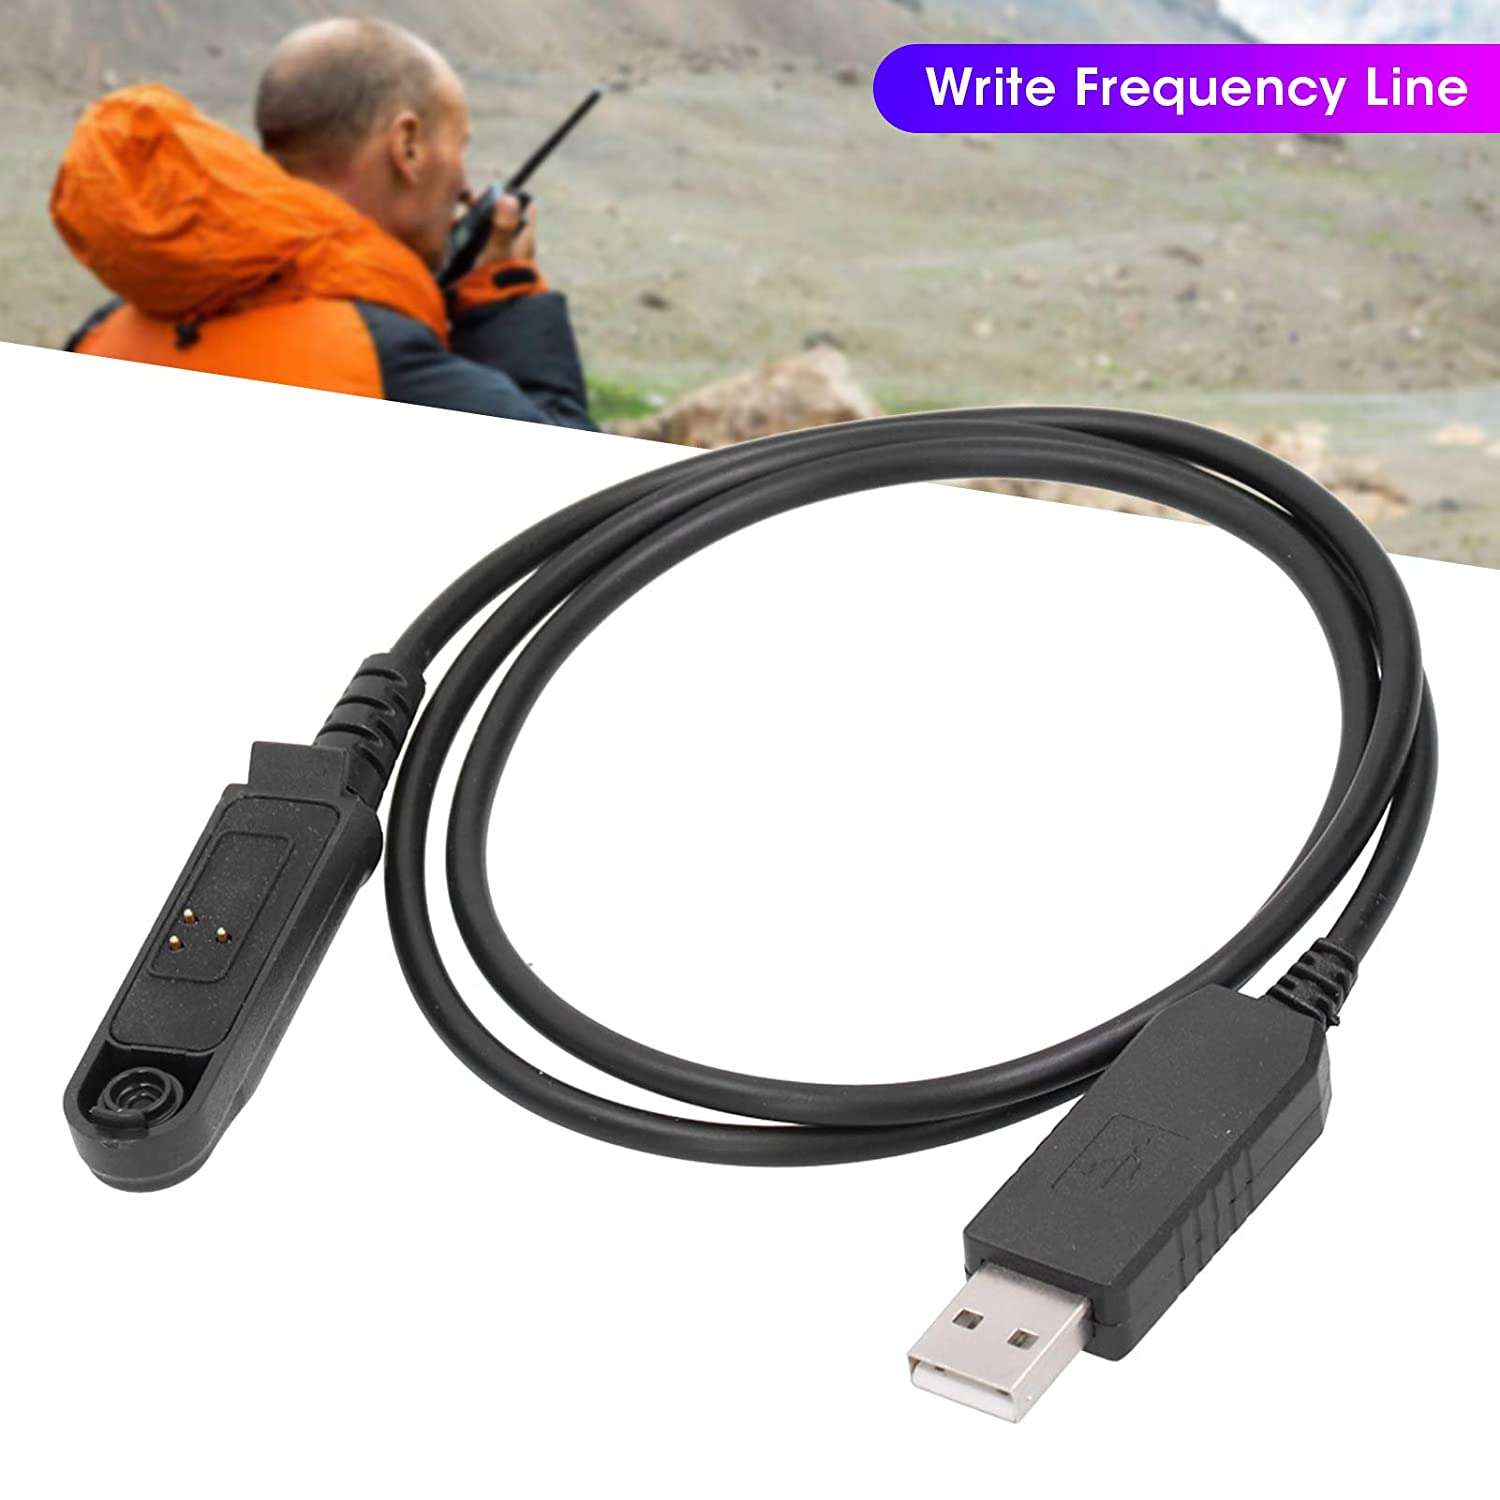 for two way radio interface. USB Programming Flexible Cable with FTDI chip sturdy and durable cable